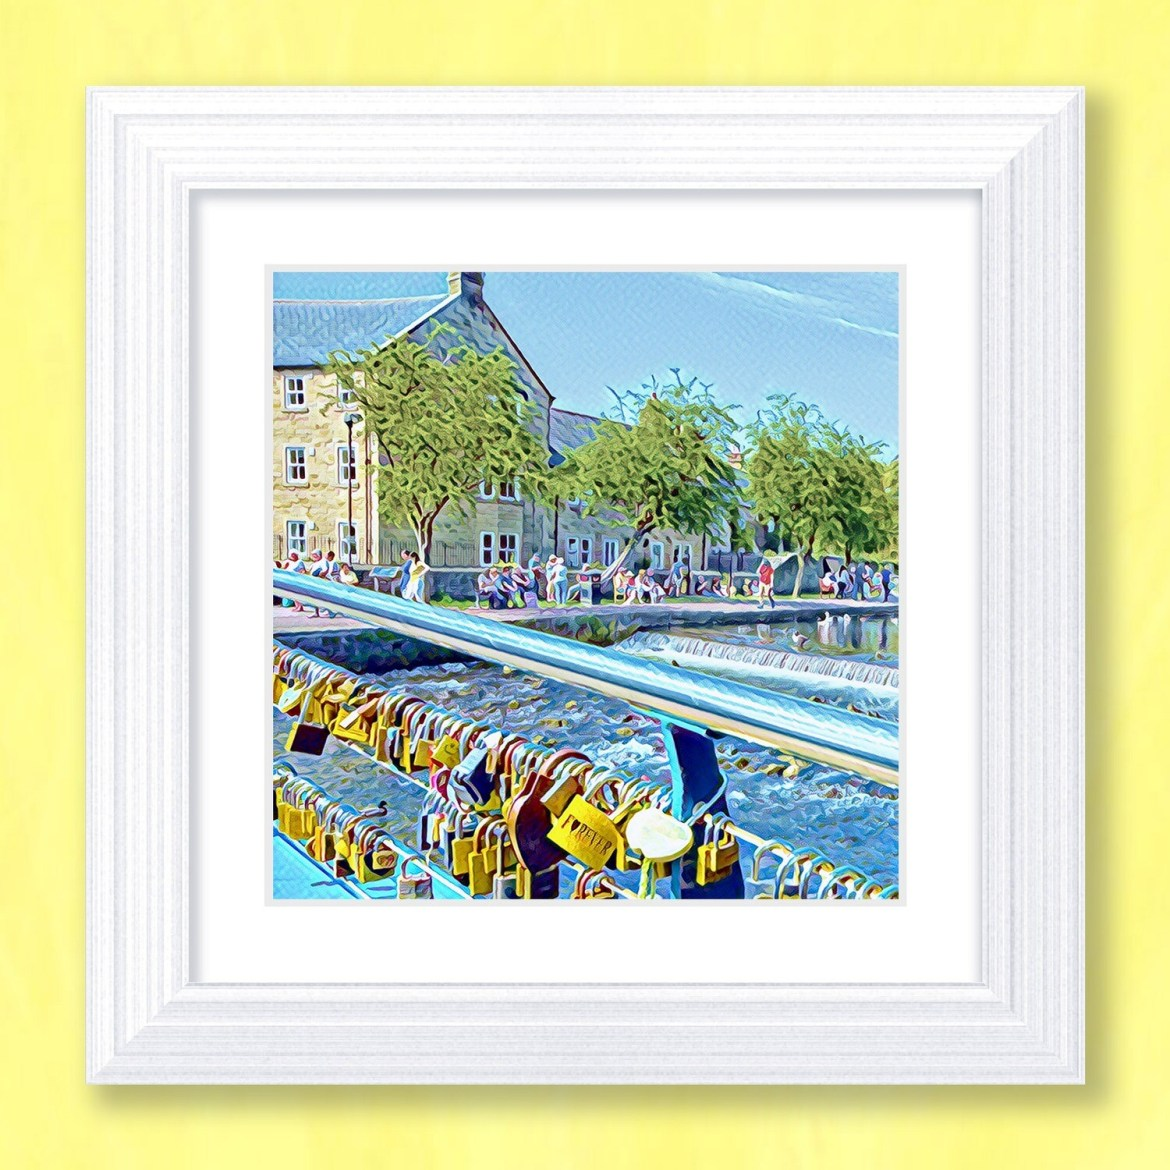 Bakewell Love Locks Art Print